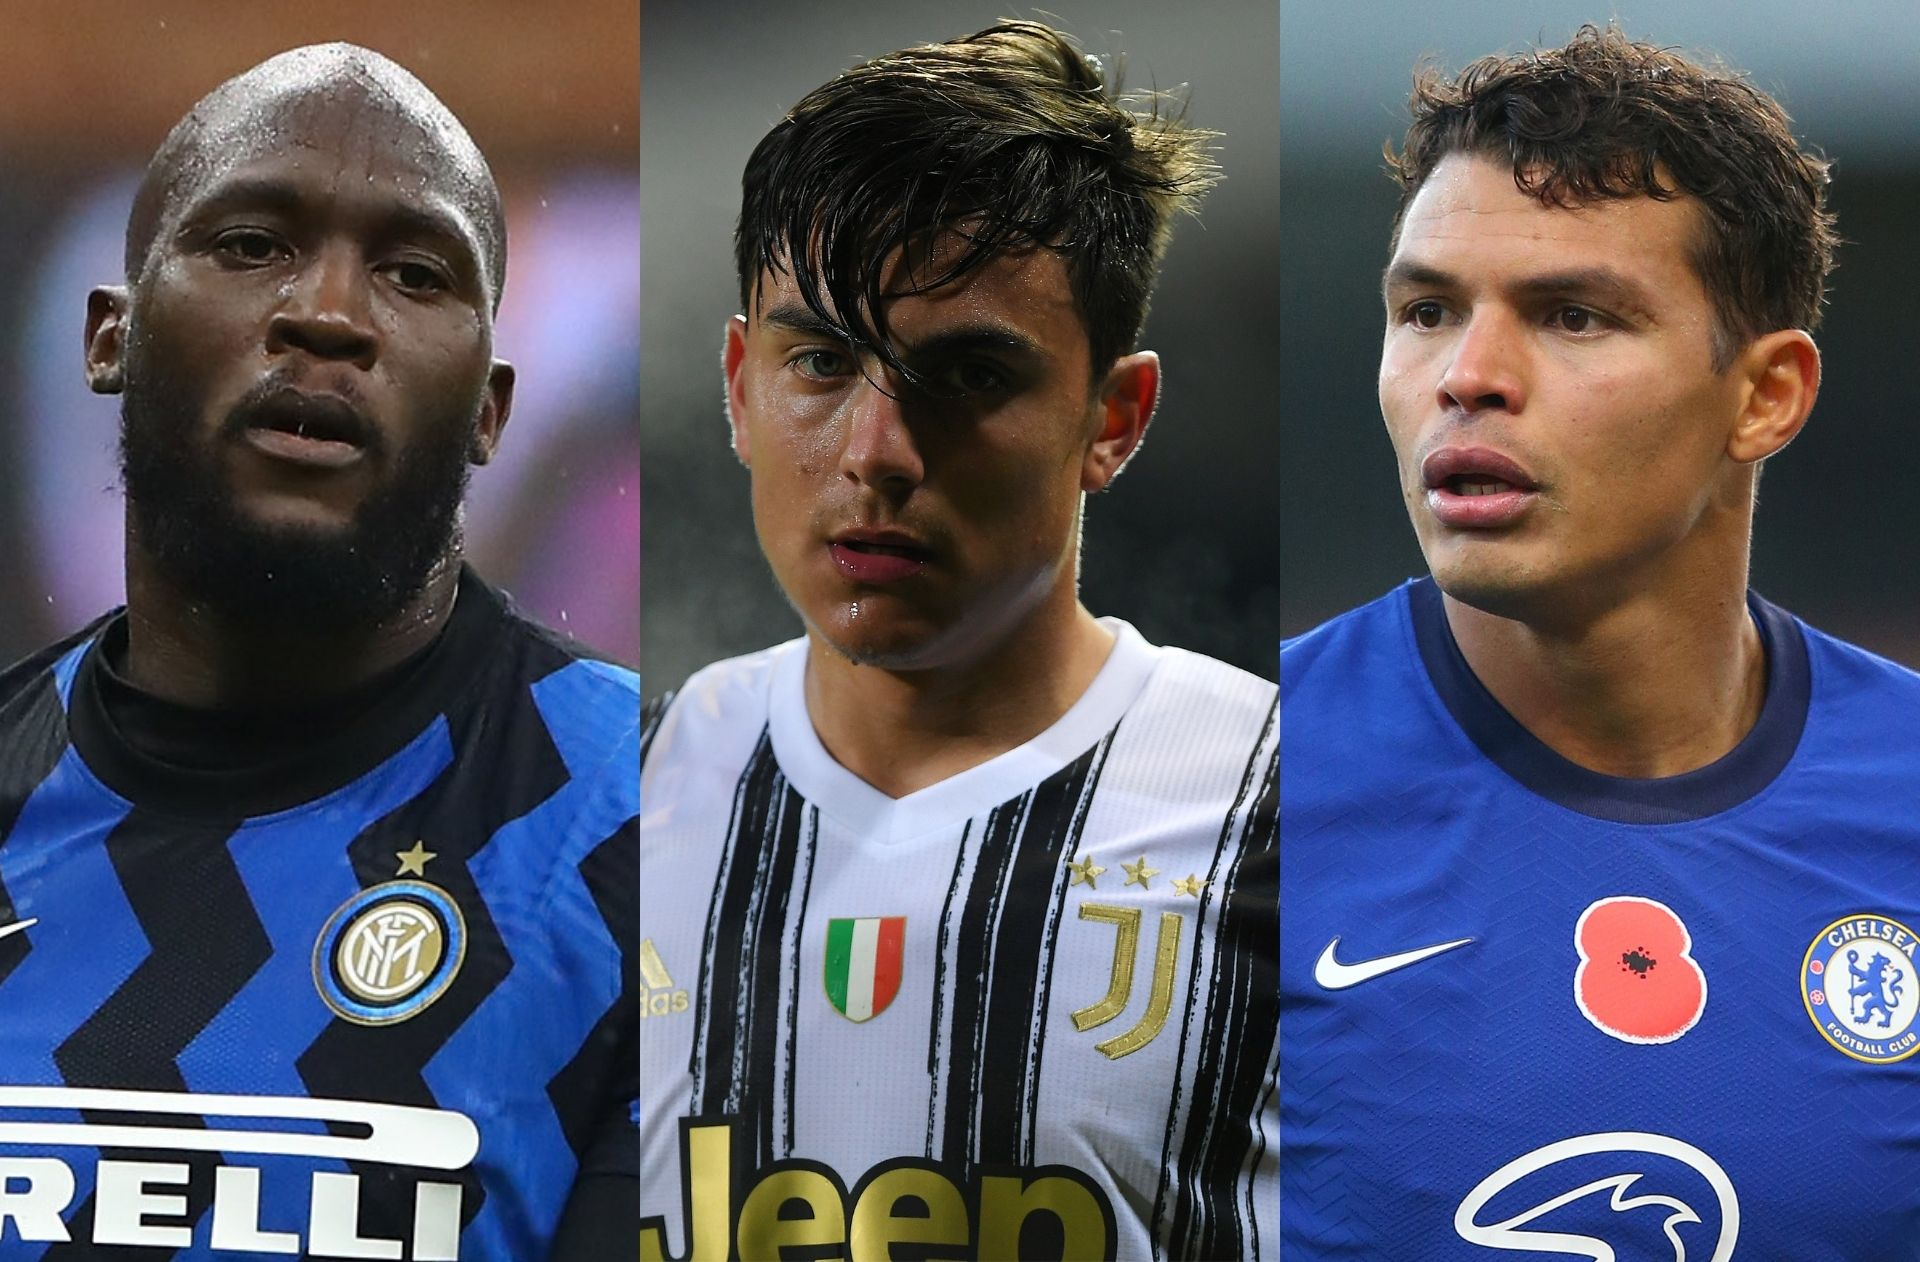 Monday's transfer rumors - Chelsea ready to sign most realistic target